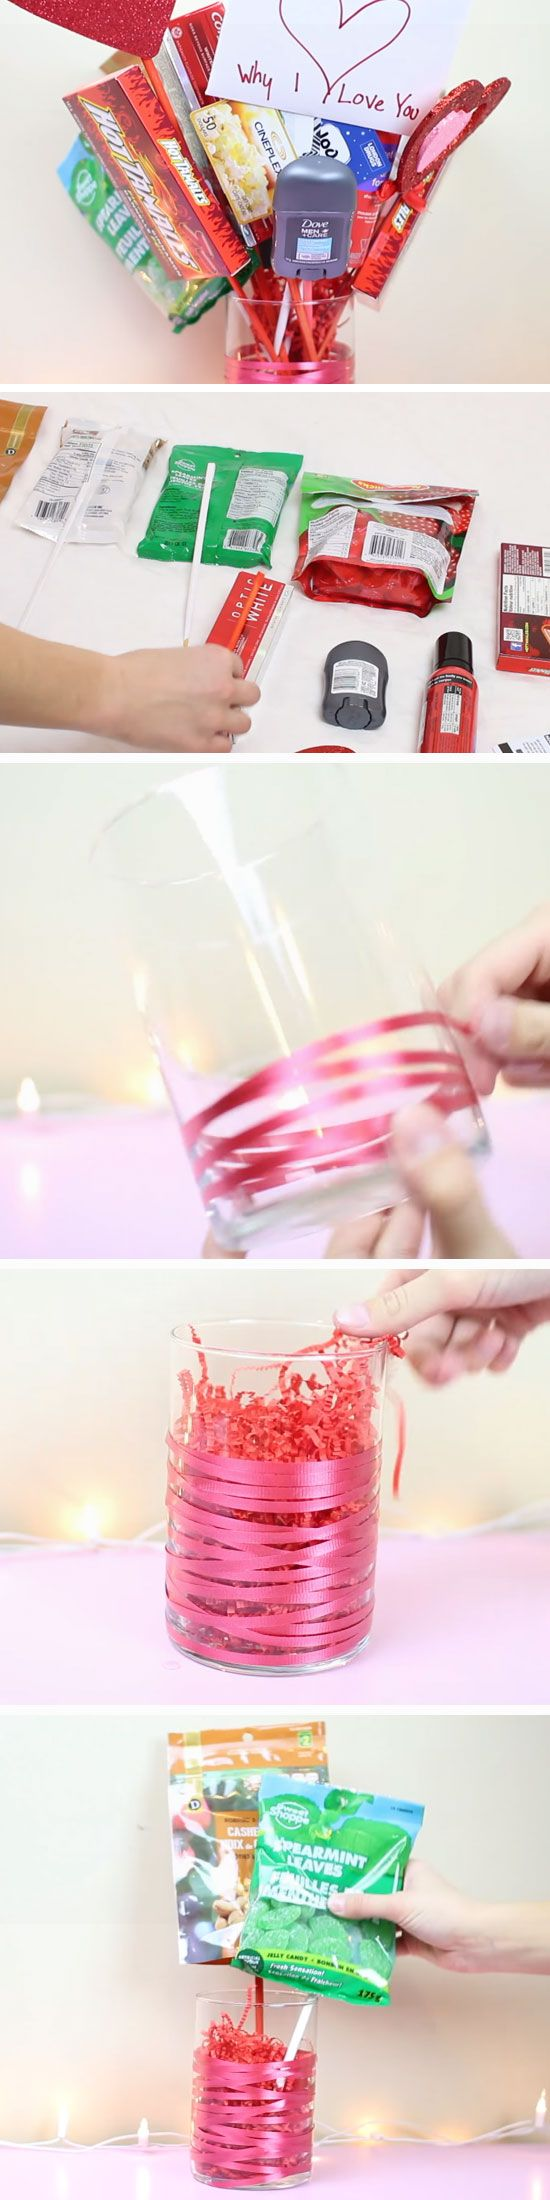 Man Bouquet | DIY Valentines Mason Jar Crafts for Him | Easy Gifts in a Jar Ideas for Boyfriend